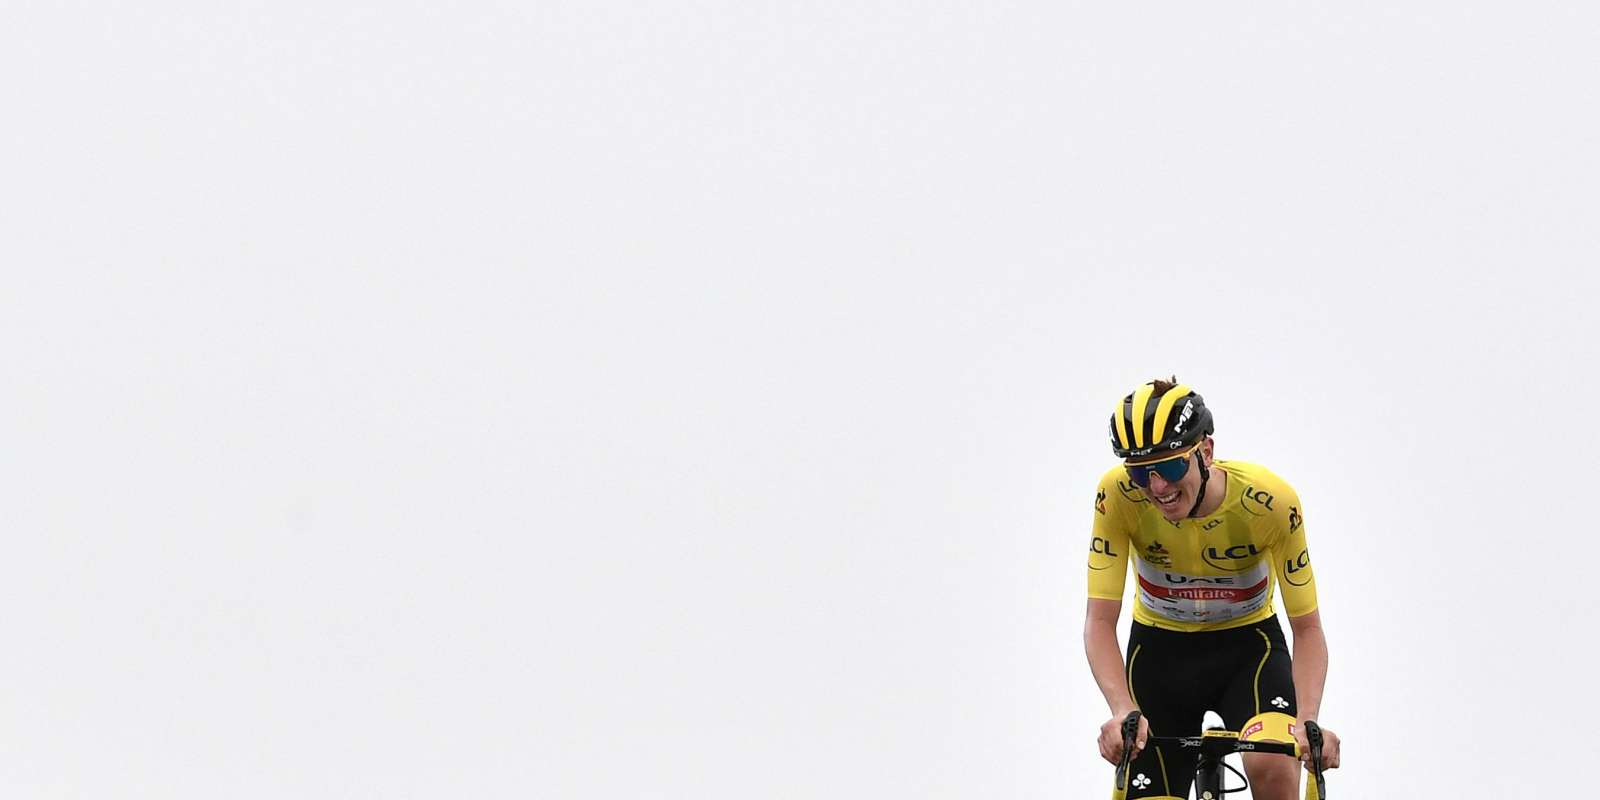 Team UAE Emirates' Tadej Pogacar of Slovenia wearing the overall leader's yellow jersey celebrates as he crosses the finish line at the end of the 17th stage of the 108th edition of the Tour de France cycling race, 178 km between Muret and Saint-Lary-Soulan, on July 14, 2021. / AFP / Philippe LOPEZ